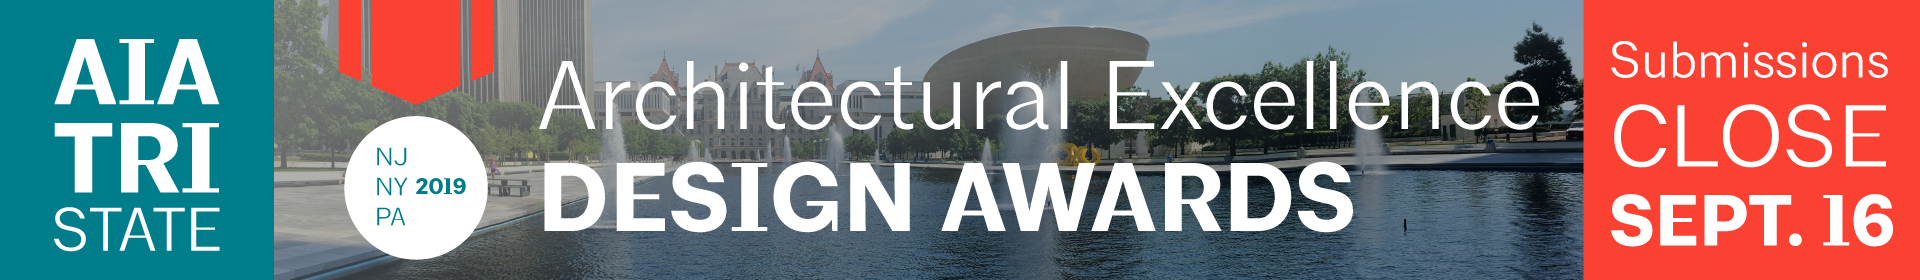 2019 AIA Tri-States Architectural Excellence Design Awards  Event Banner